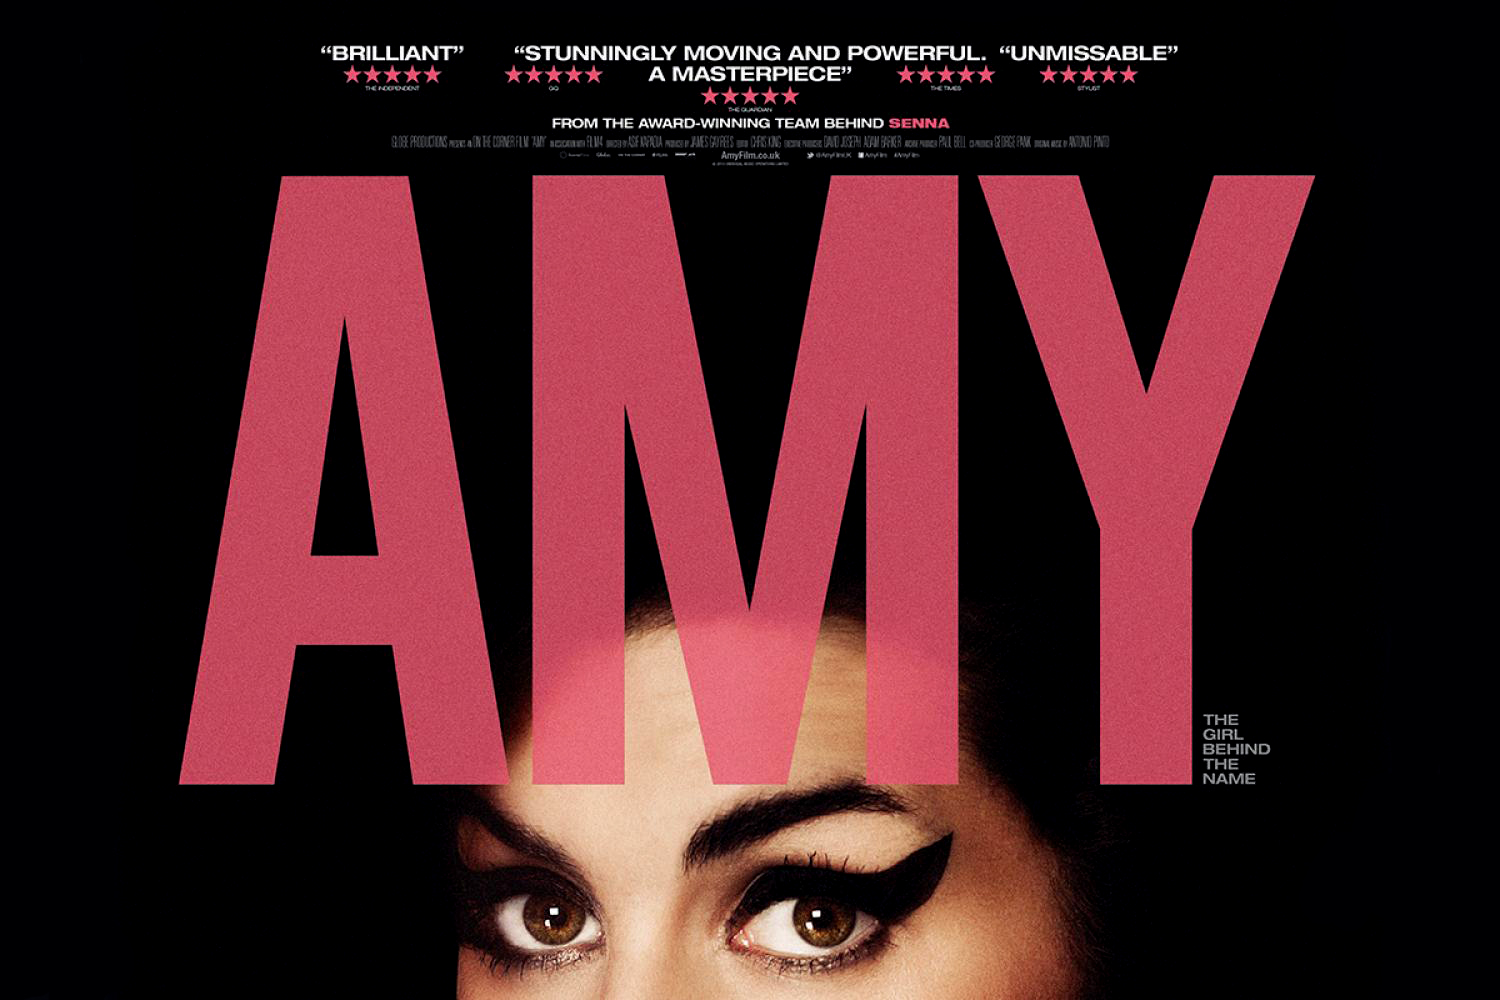 RETRO KIMMER'S BLOG: A... Amy Winehouse Documentary